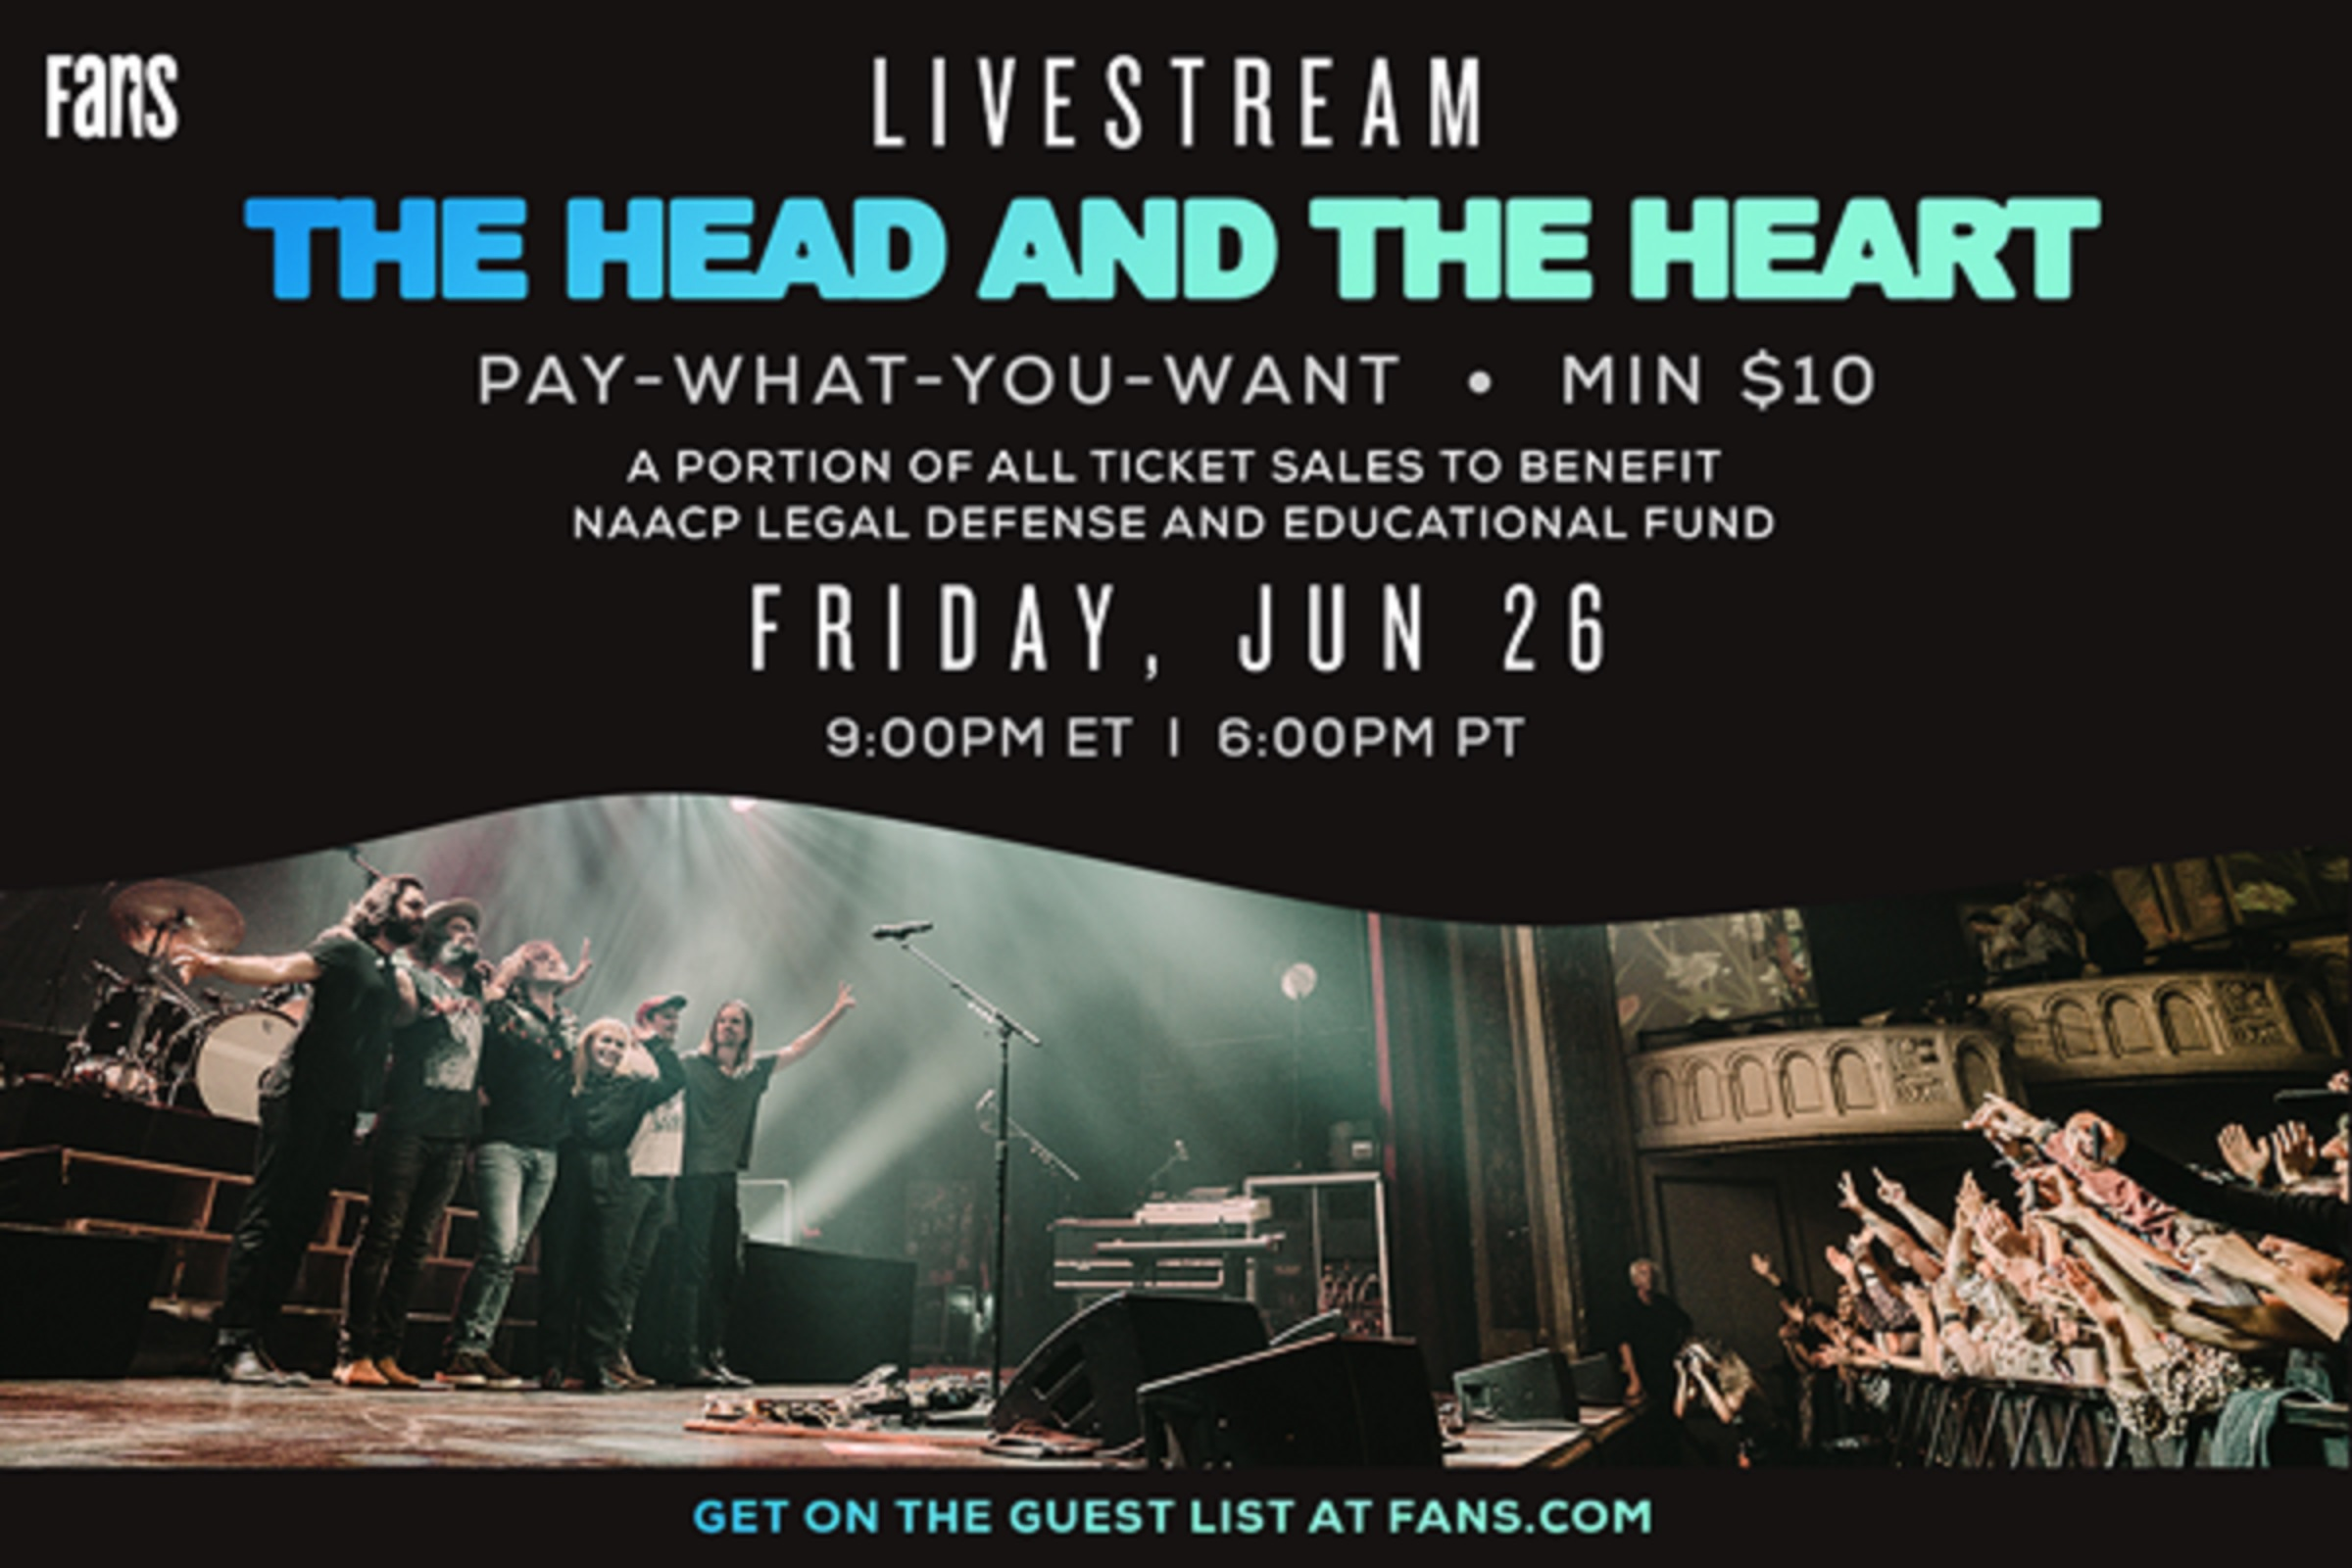 The Head and The Heart livestream to benefit NAACP Legal Defense